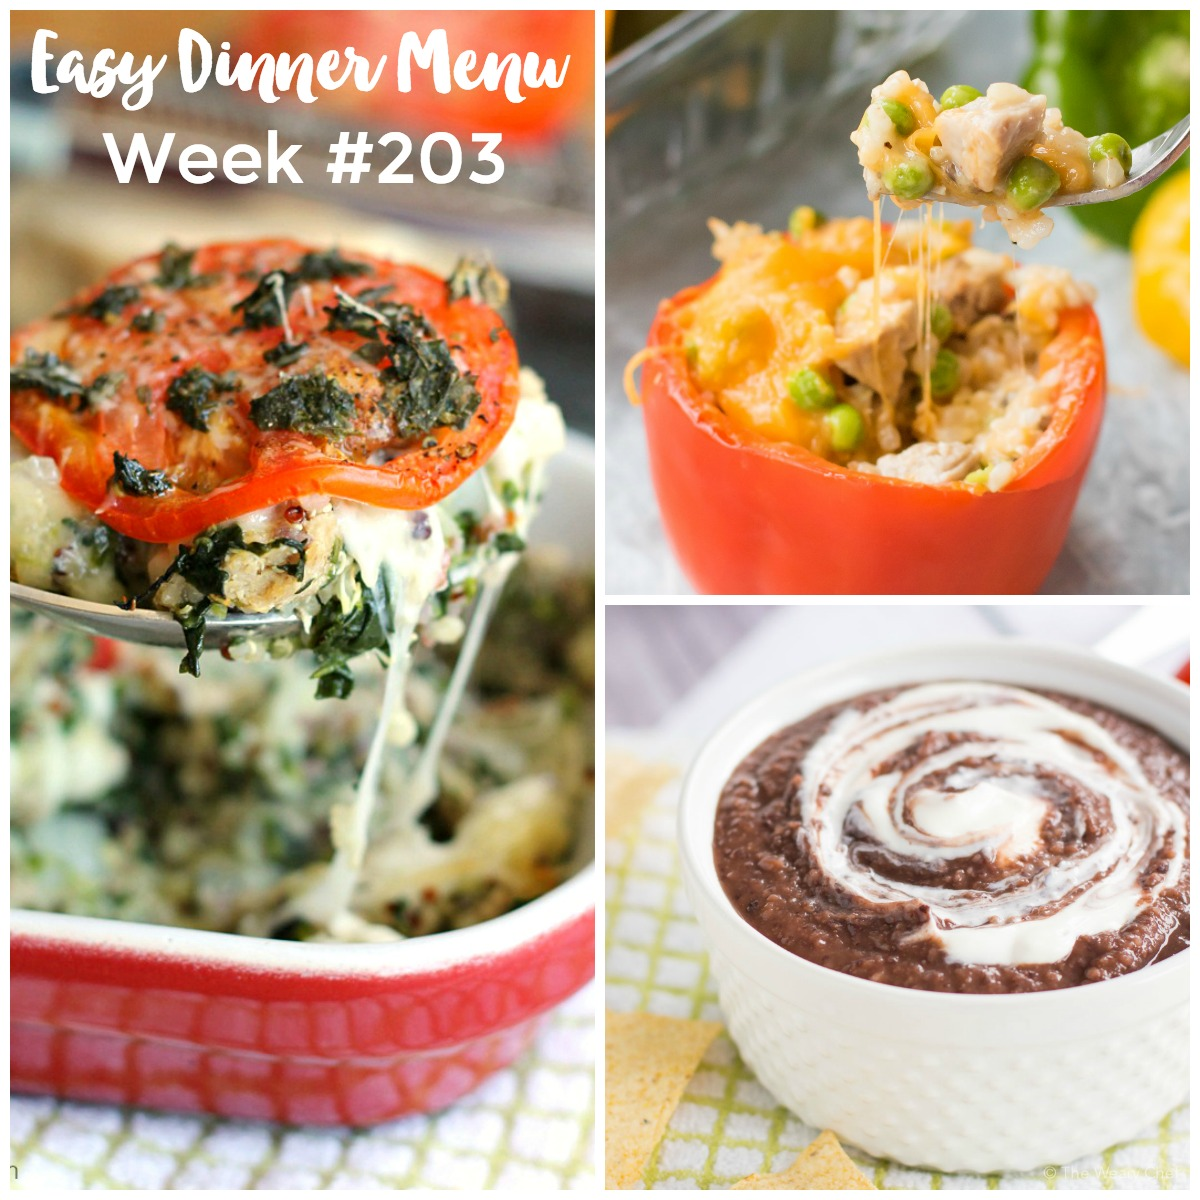 The Weary Chef's Easy Weekly Dinner Menu #203 - This week's dinner menu features Caprese Quinoa Casserole, Easy Stuffed Peppers, Blender Black Bean Soup, and lots more!!